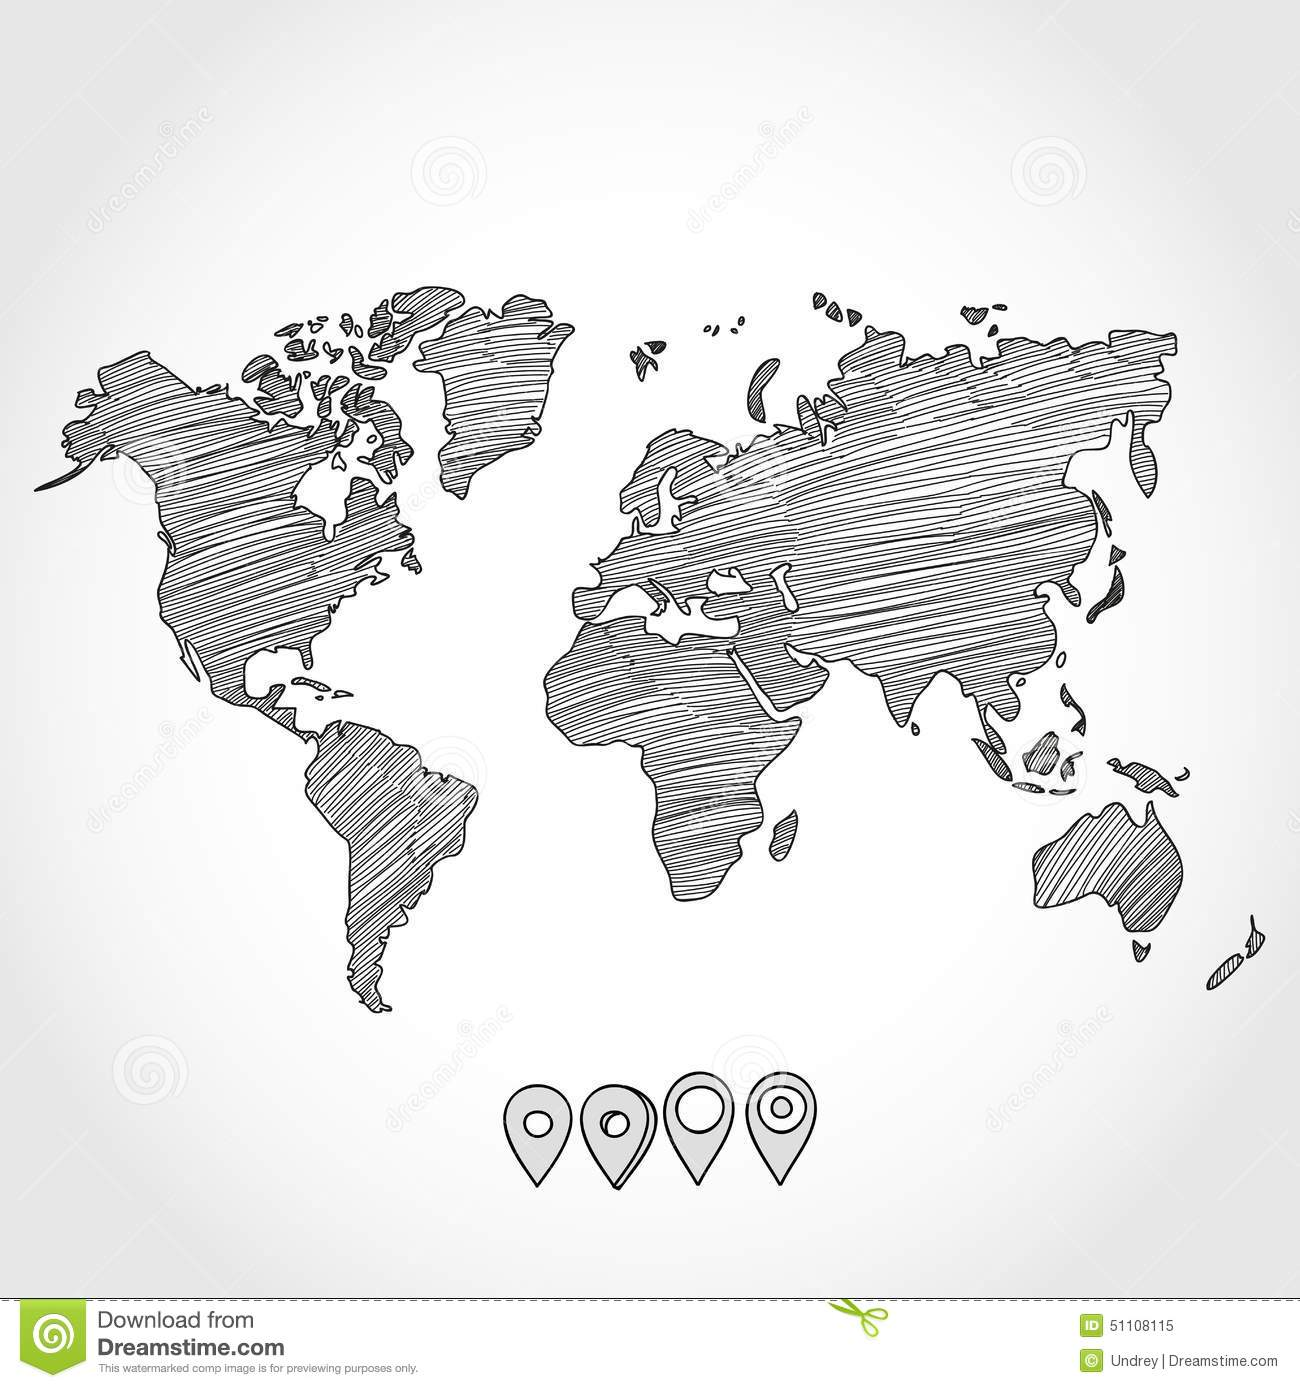 Hand Drawn Doodle Sketch Political World Map And Stock Vector